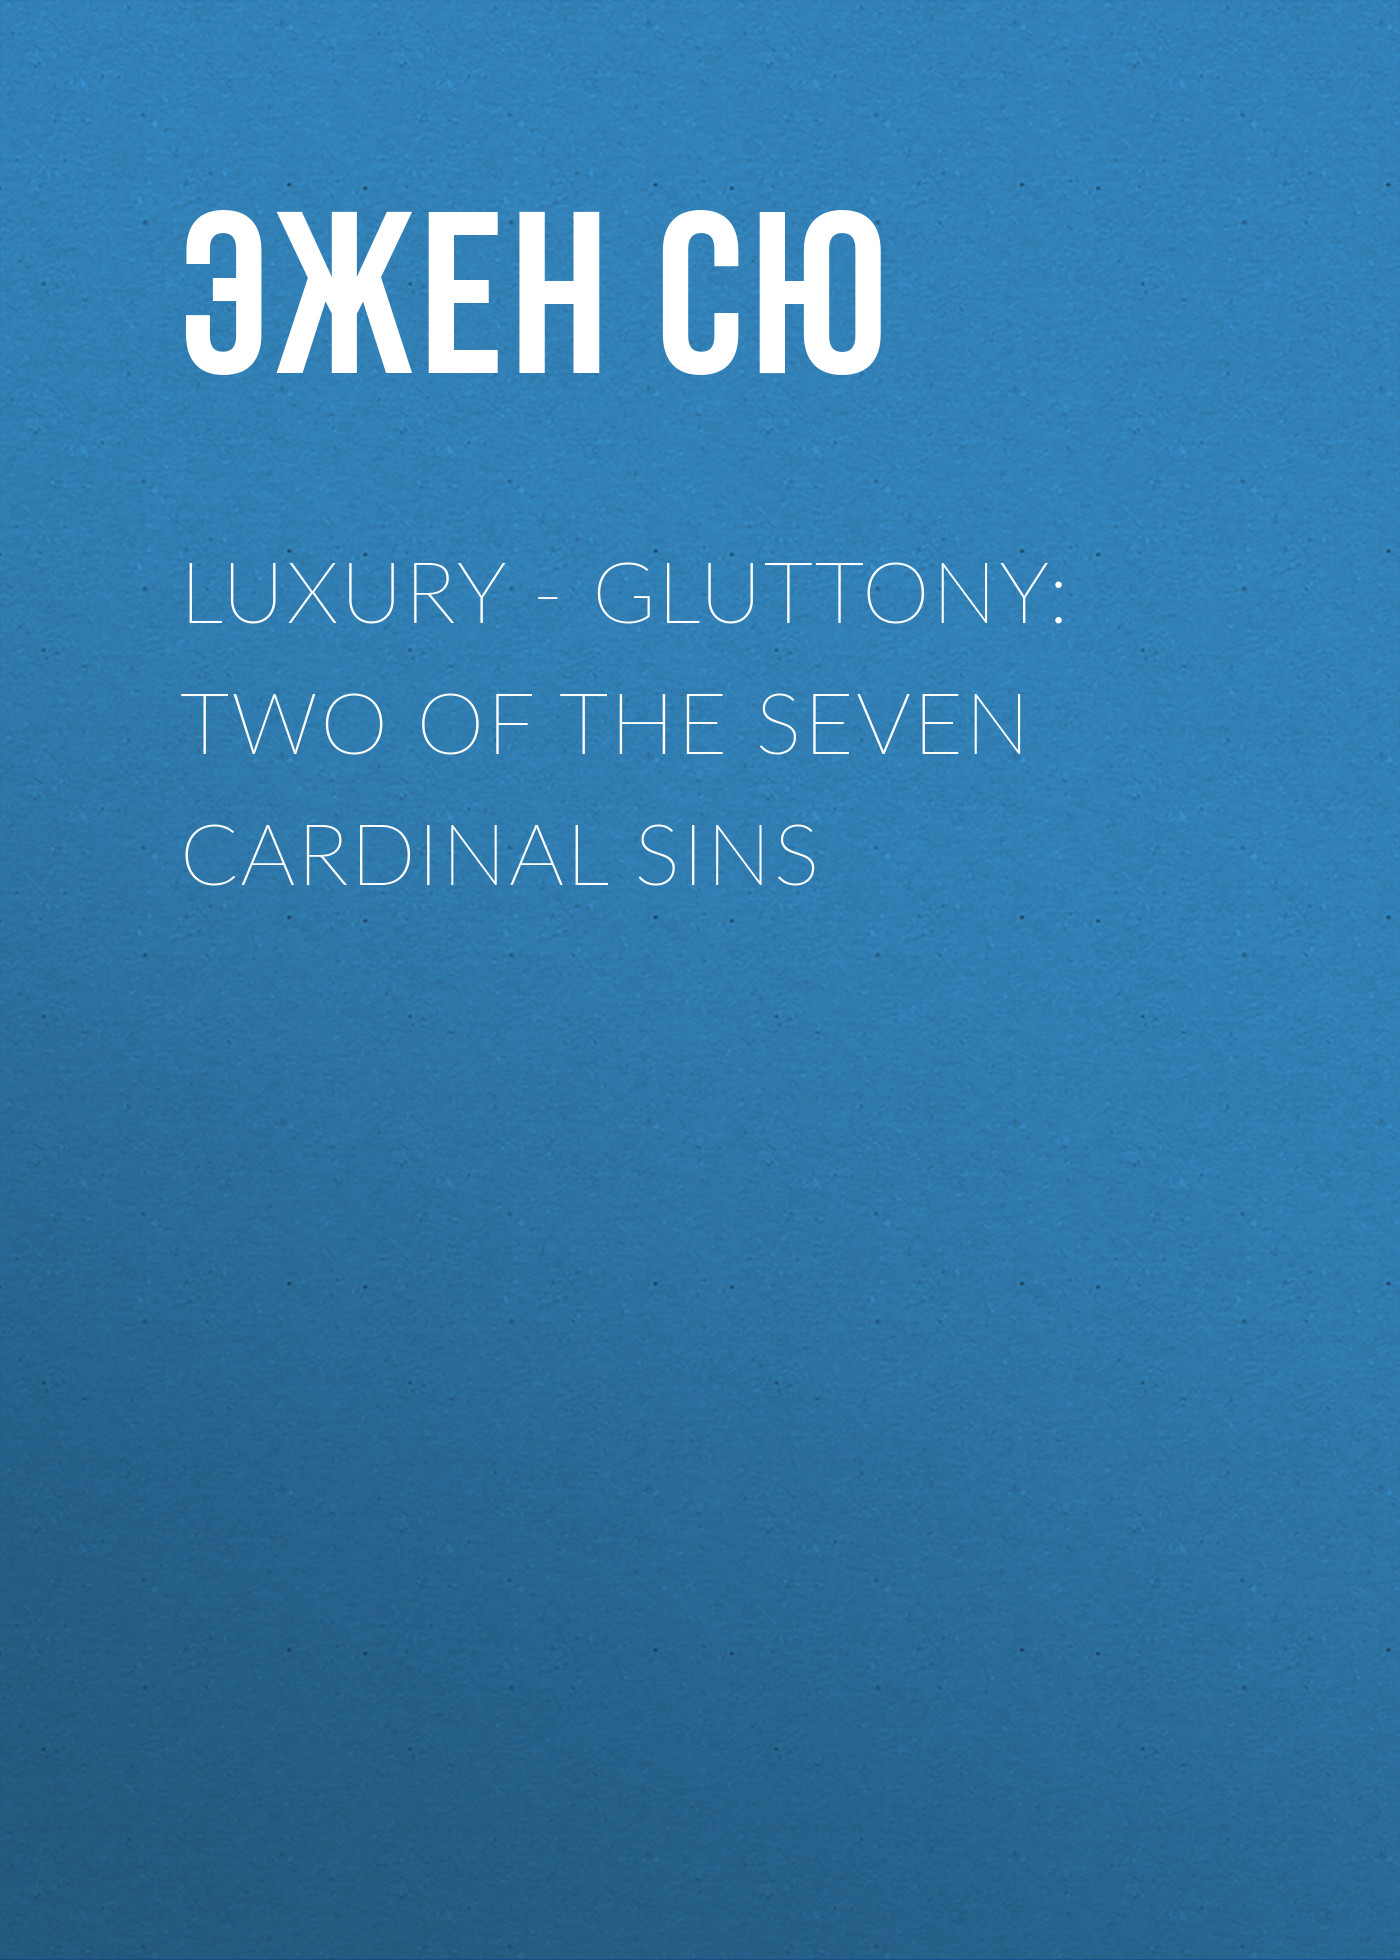 Luxury-Gluttony: two of the seven cardinal sins